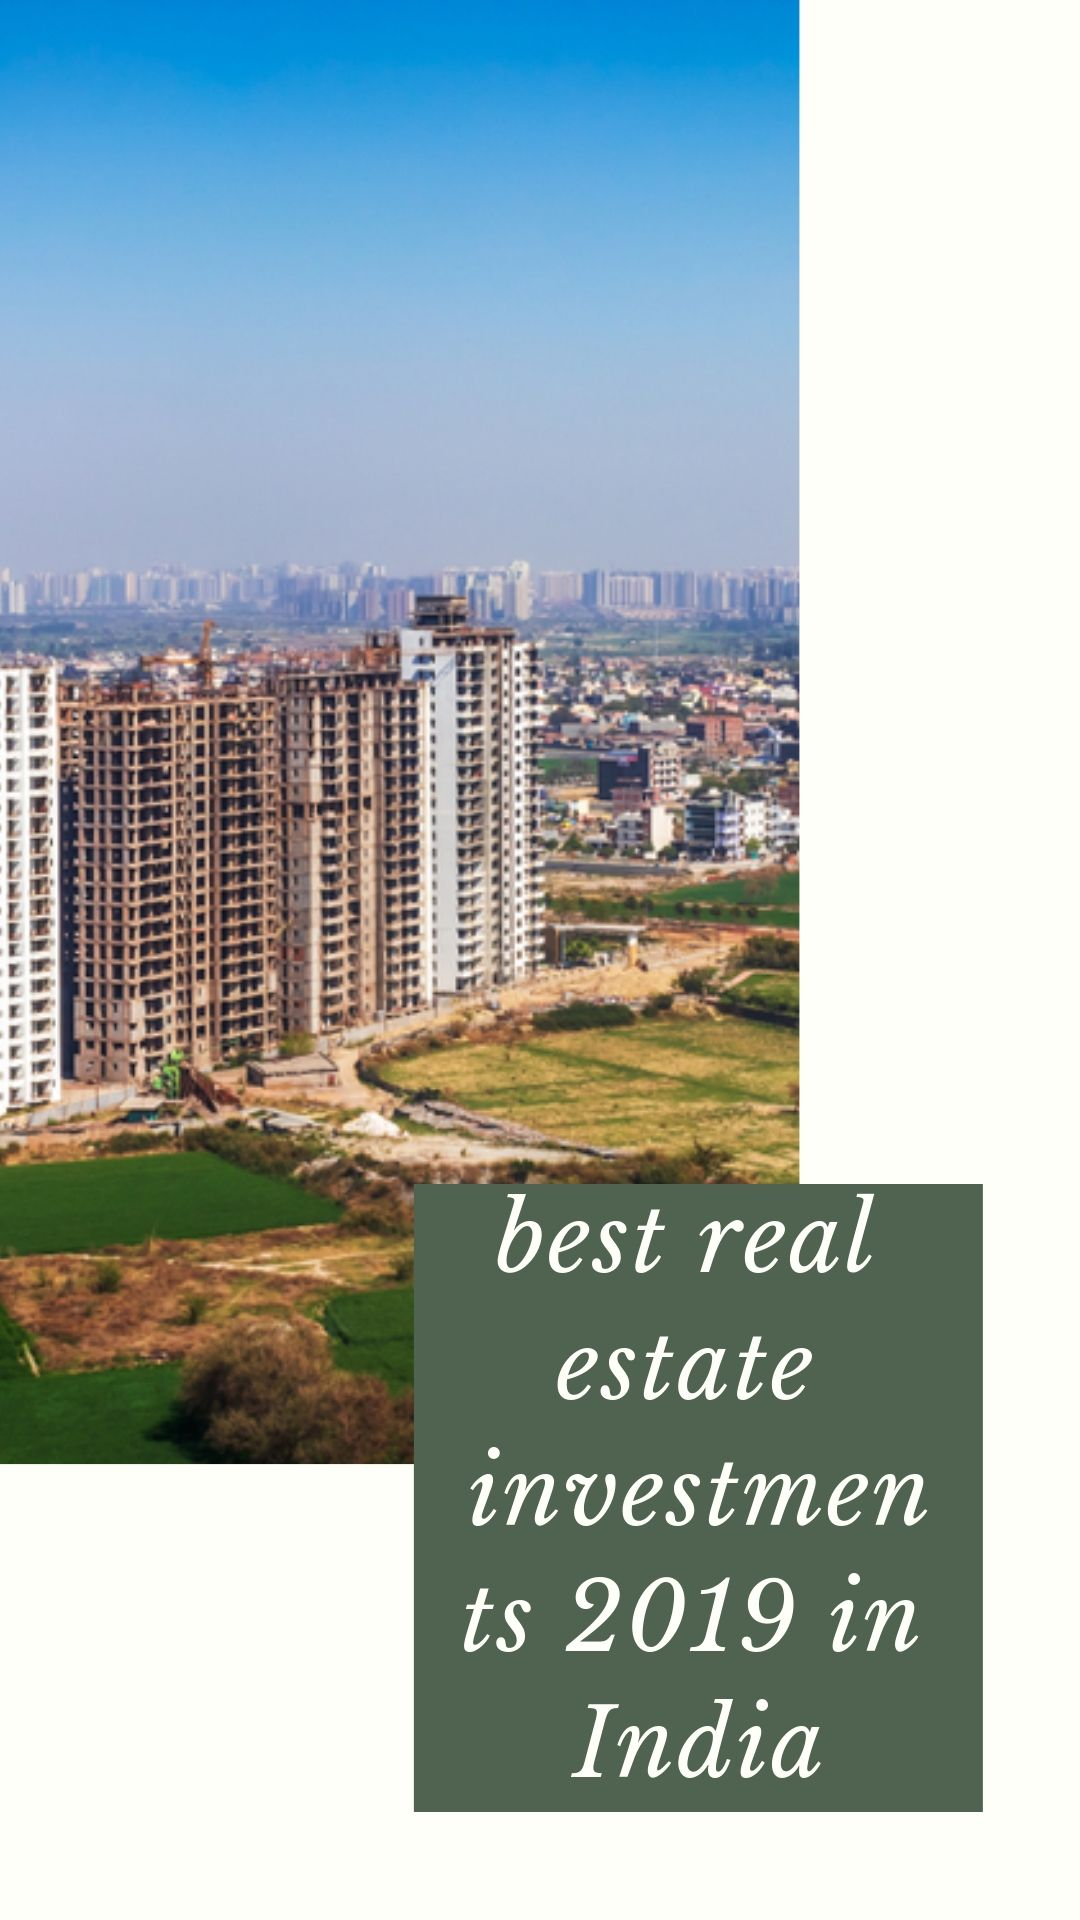 Best Place To Invest In Real Estate In India 2019 Best Real Estate Investments Real Estate Real Estate Investing